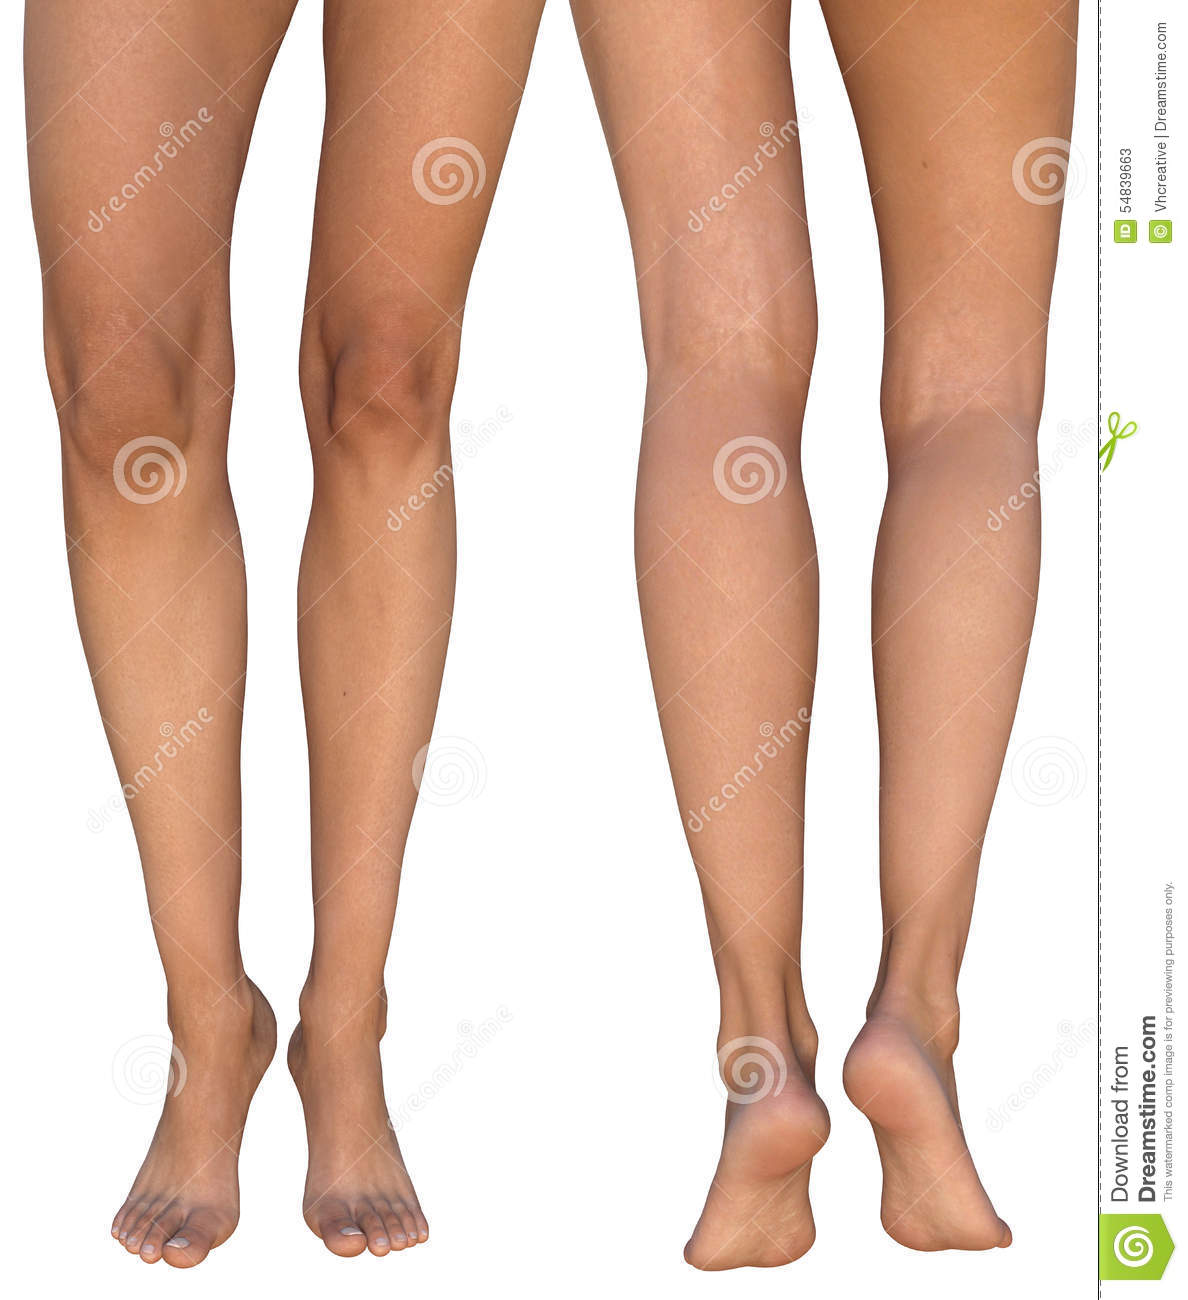 Slightly Bent In Knees Standing On Toes Female Legs Stock